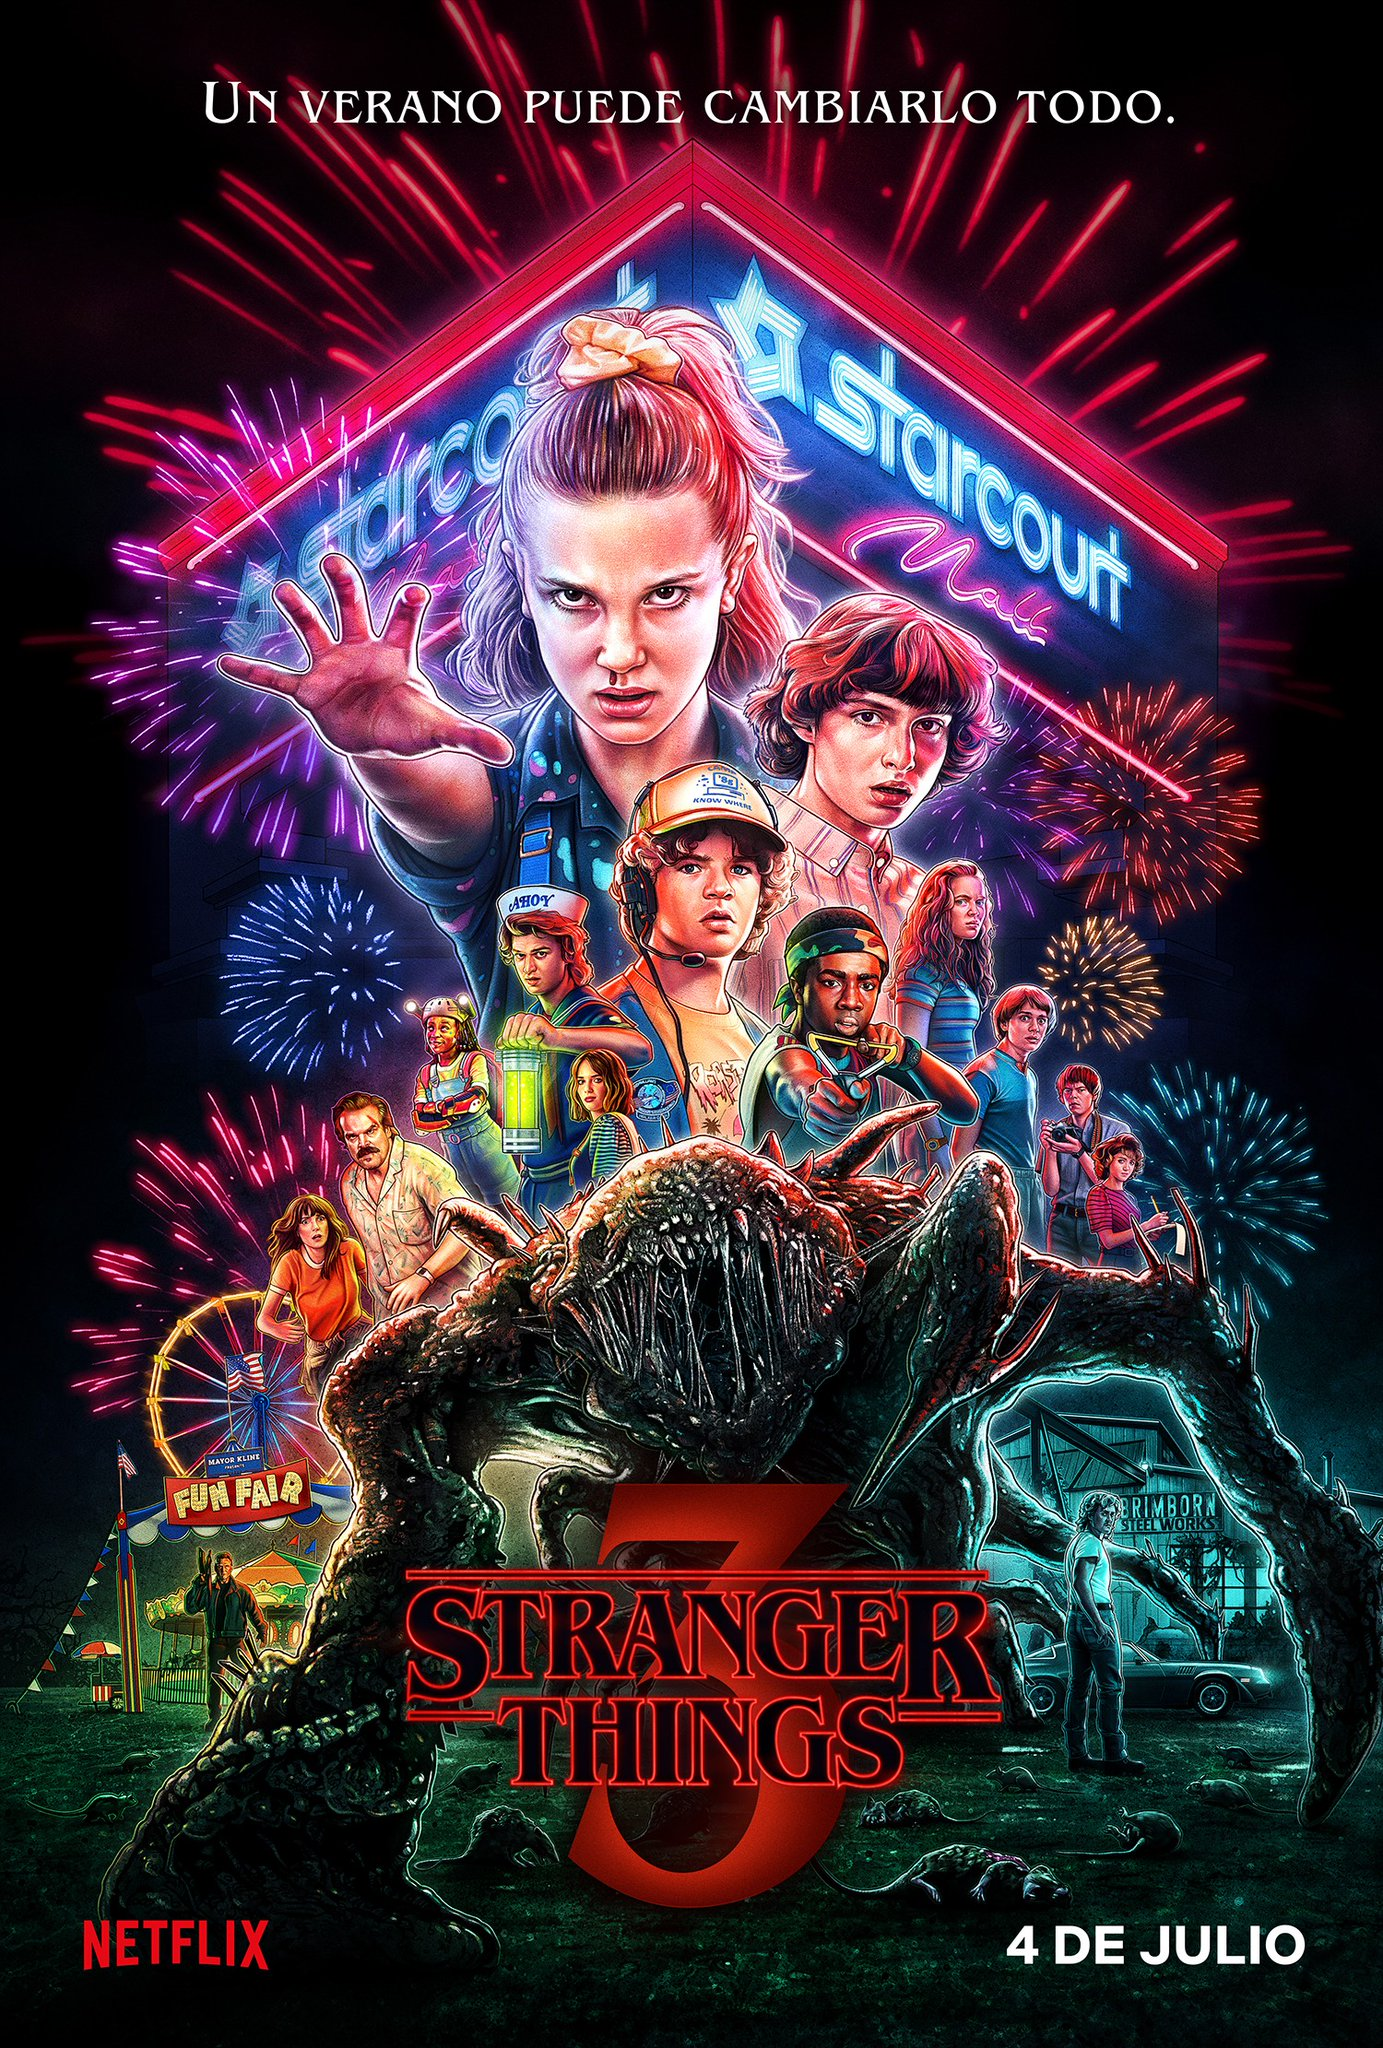 ¡El trailer final de Stranger Things T3 es épico!